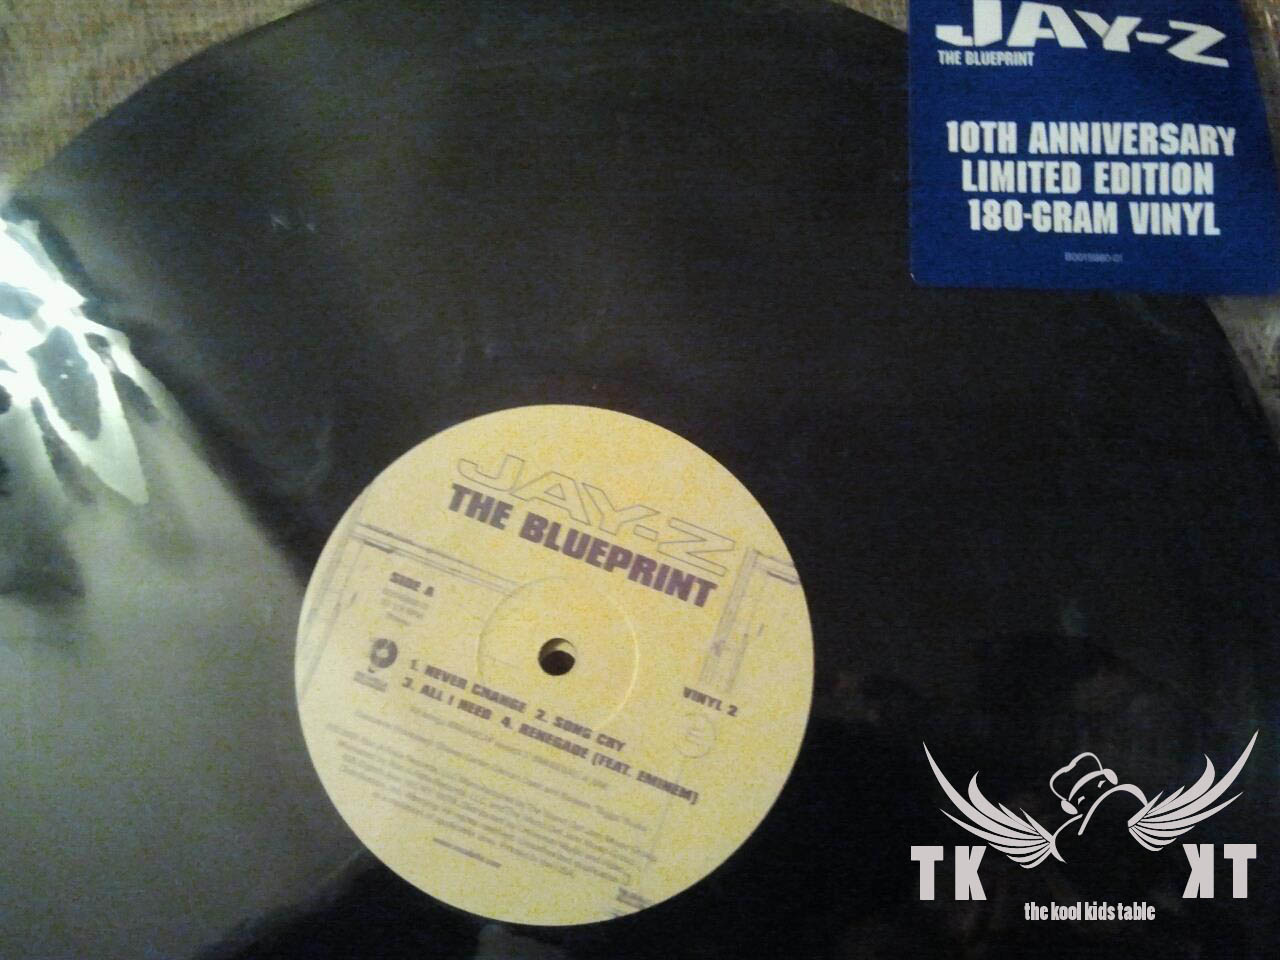 Kop that jawn jay zs the blueprint 10th anniversary vinyl the kool kid prod has copped his own copy of jay zs the blueprint malvernweather Gallery